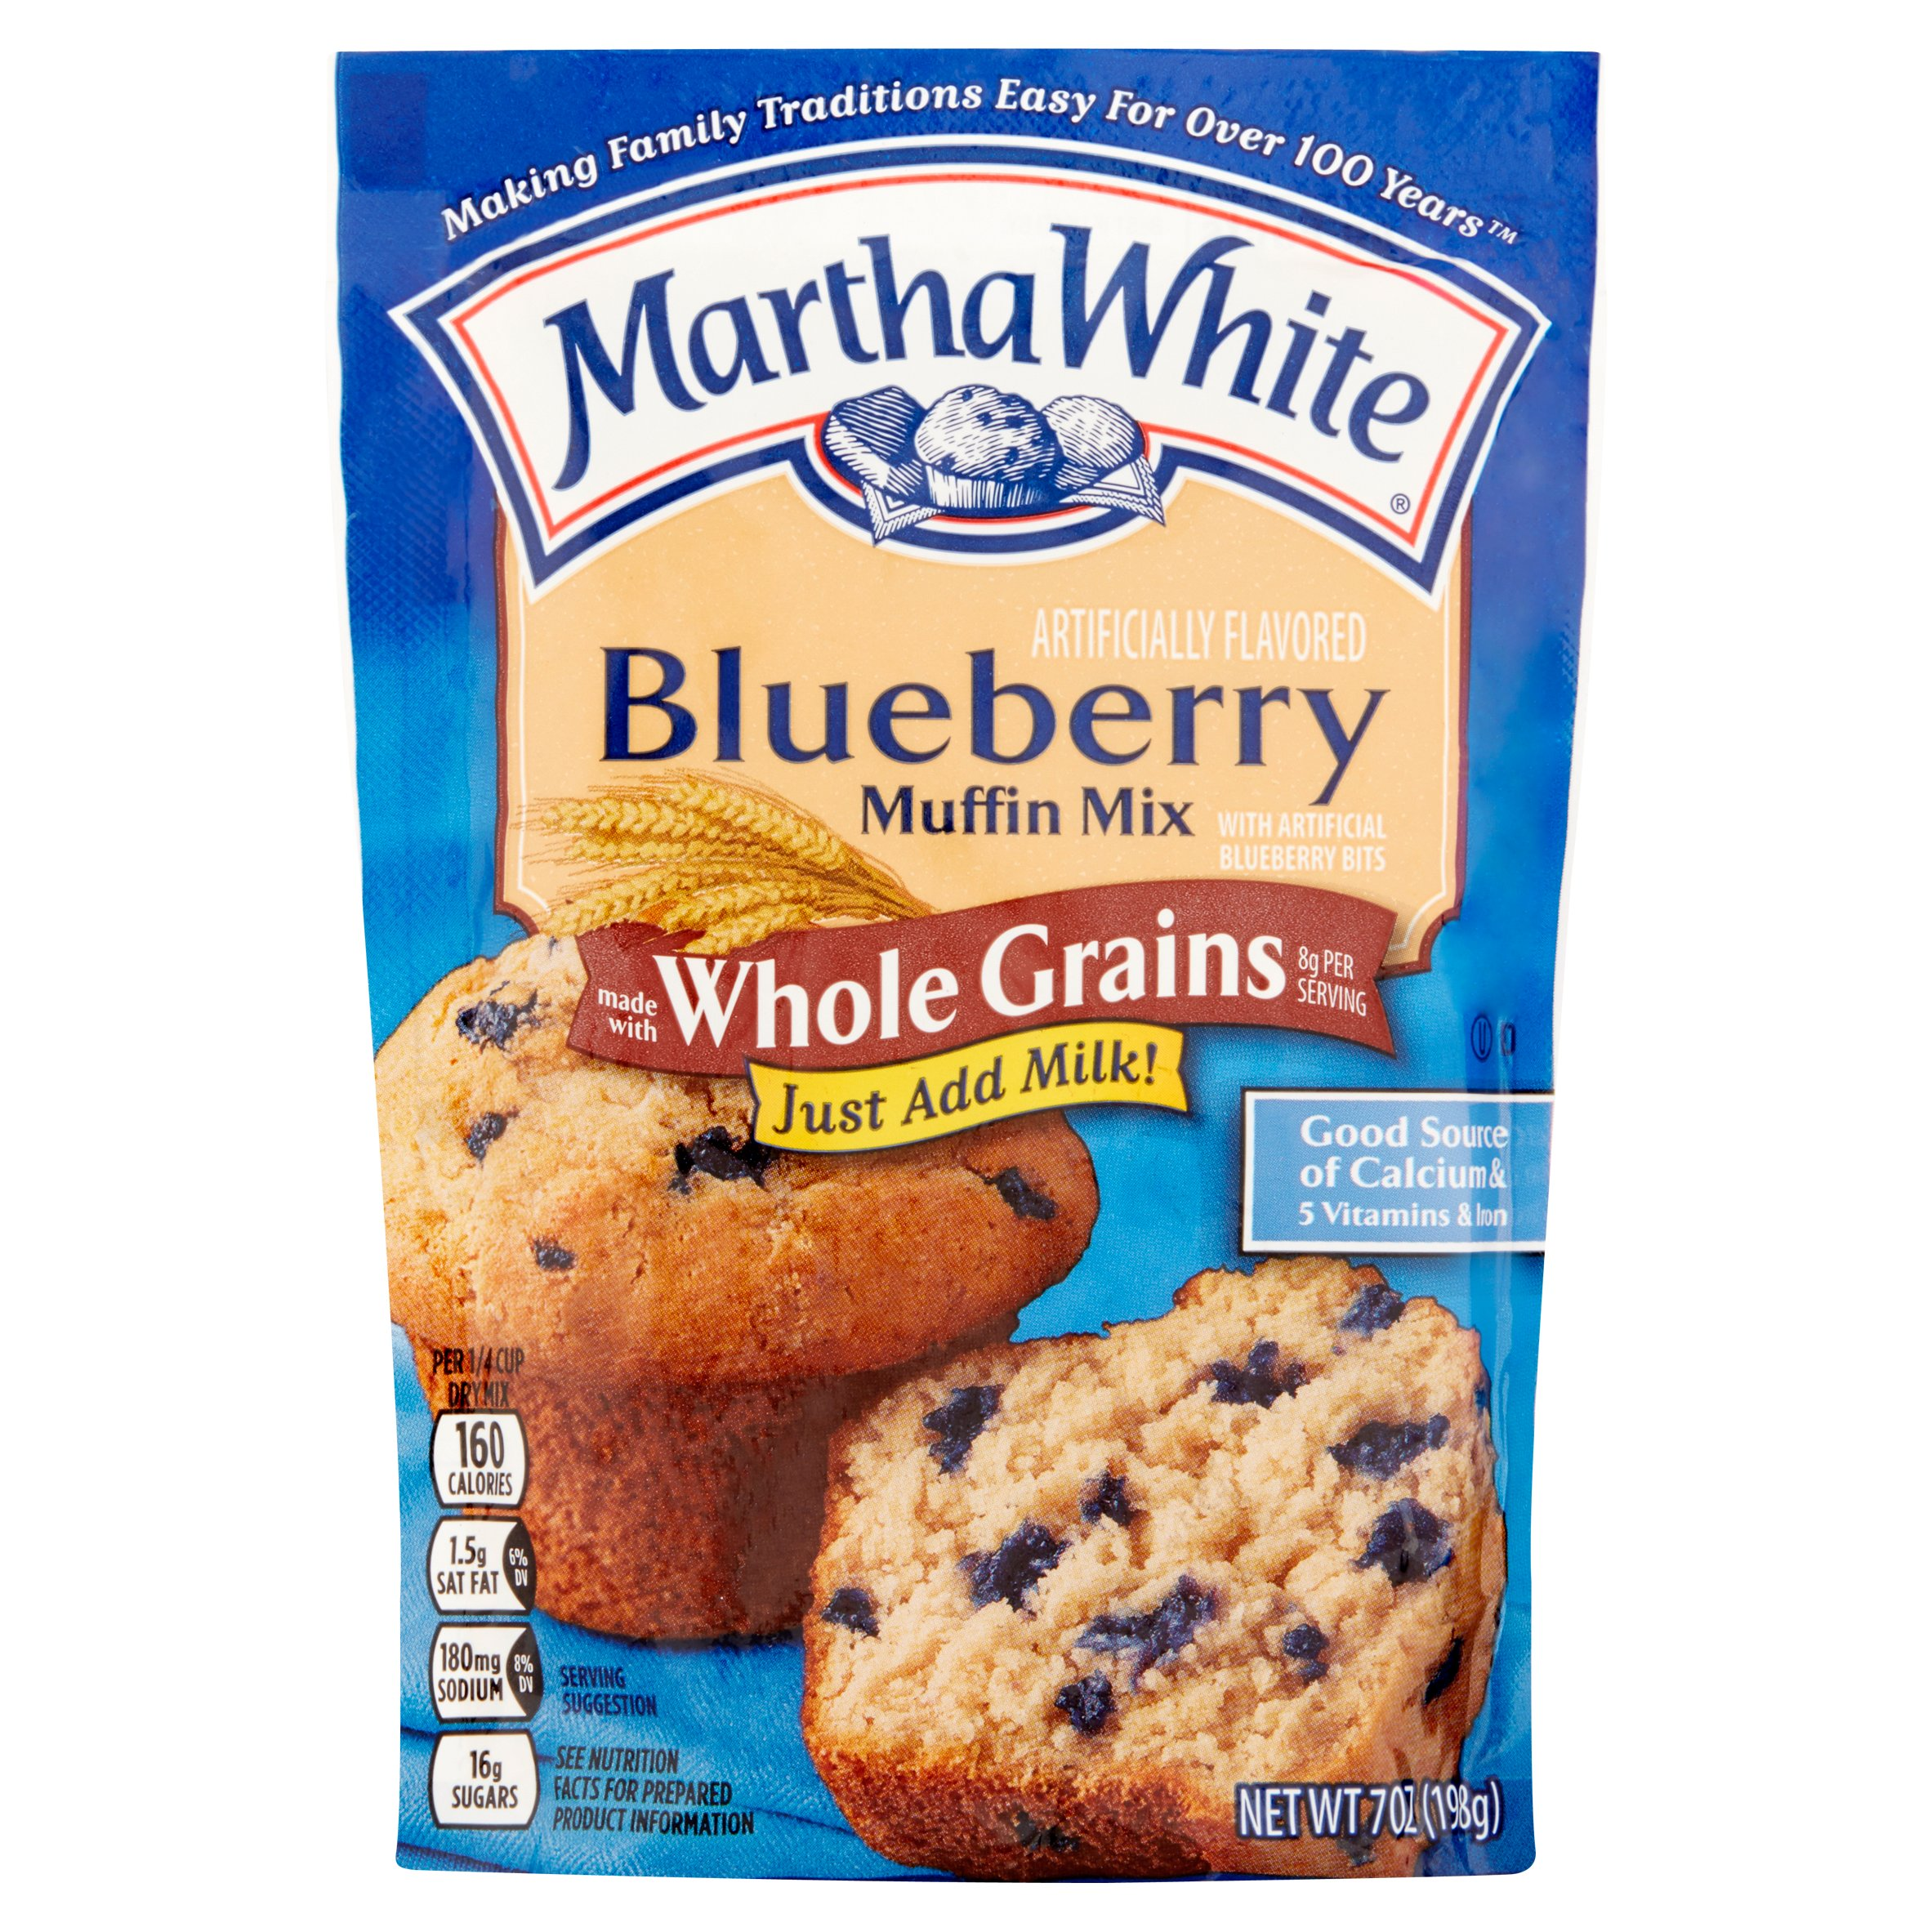 Martha White Blueberry Muffin Mix, 7 oz